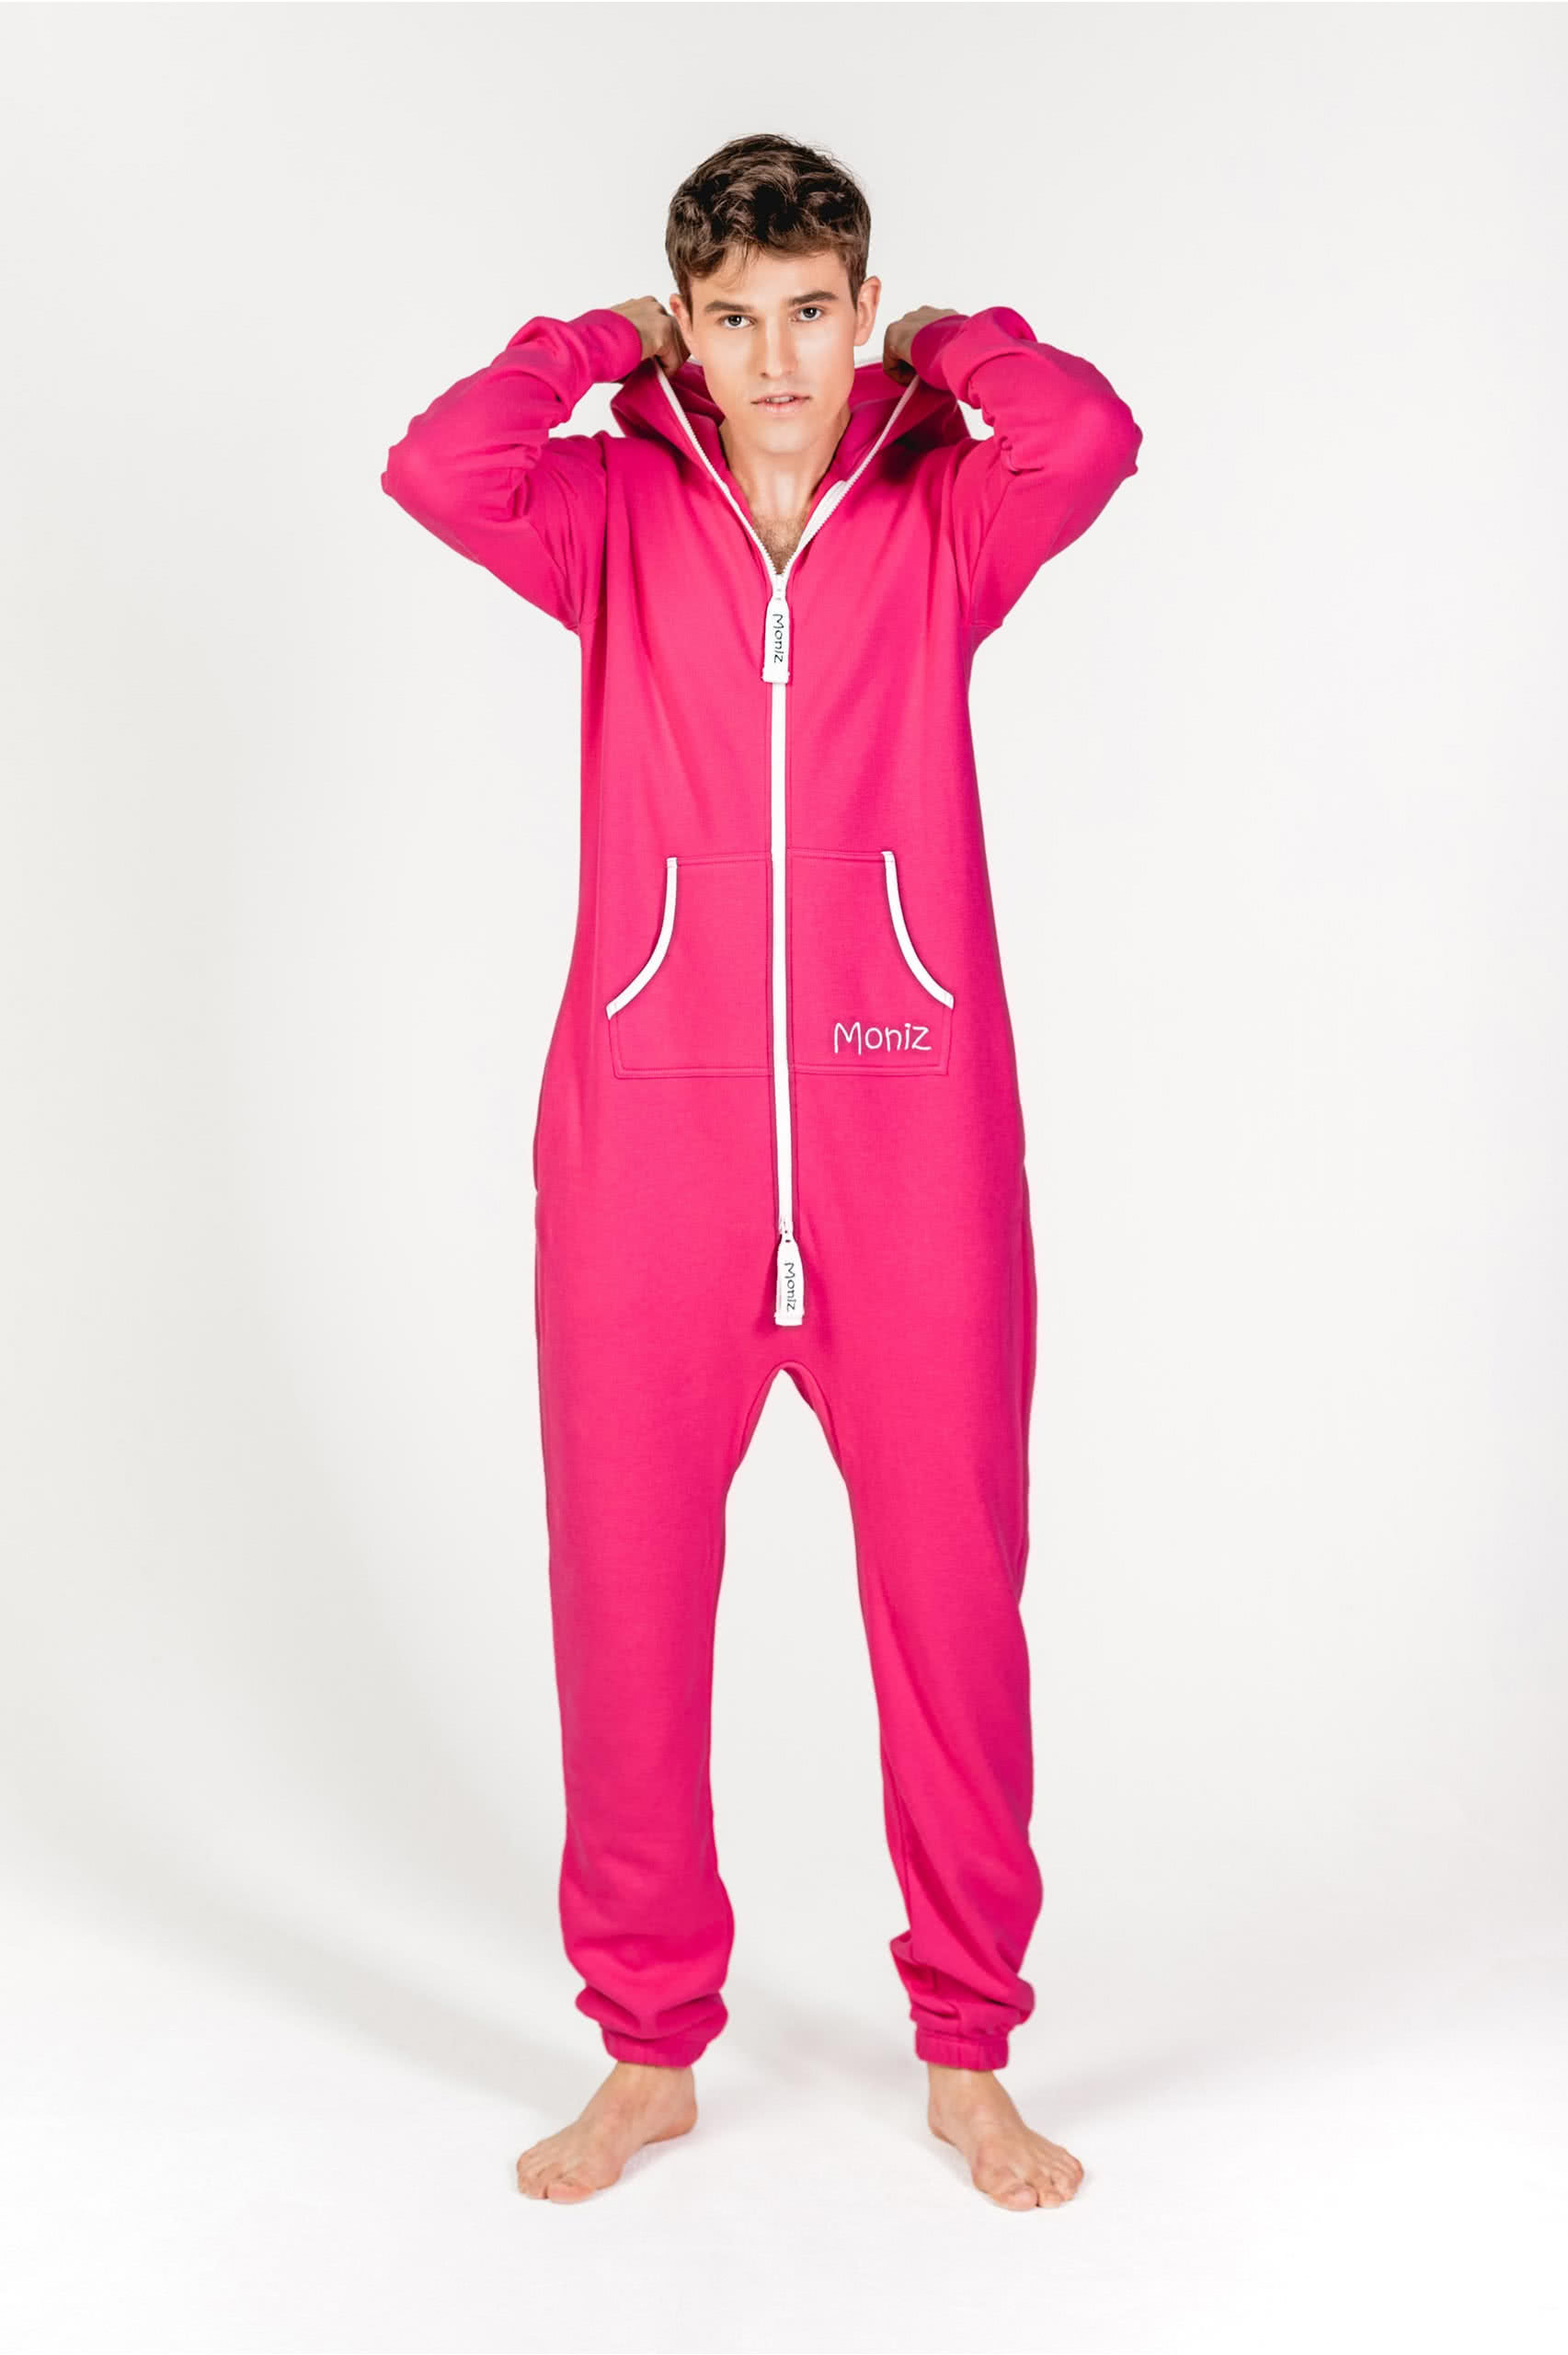 Moniz Herren Jumpsuit Pink - Watermelon Pink